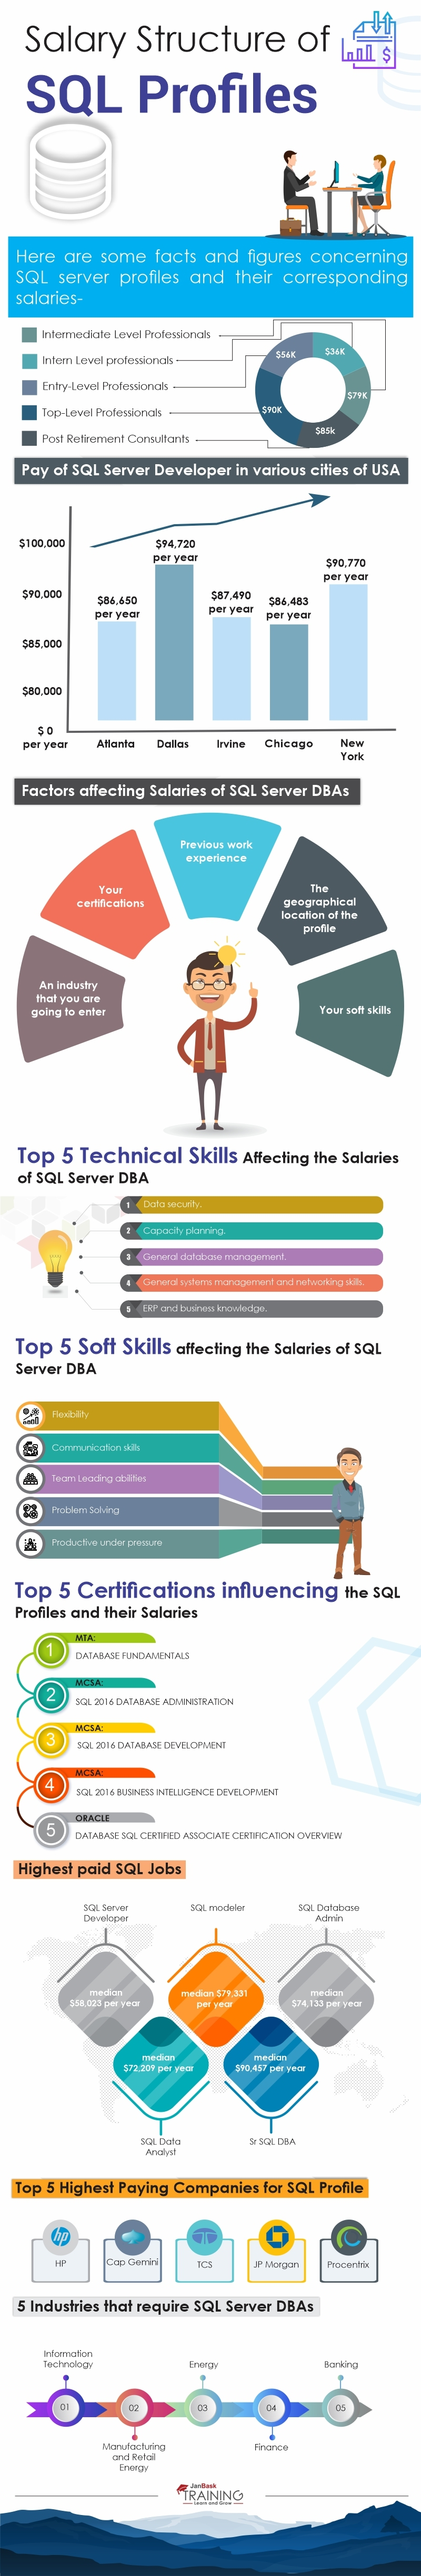 SQL Server Developer & Database Administrator Salary Structure infographic